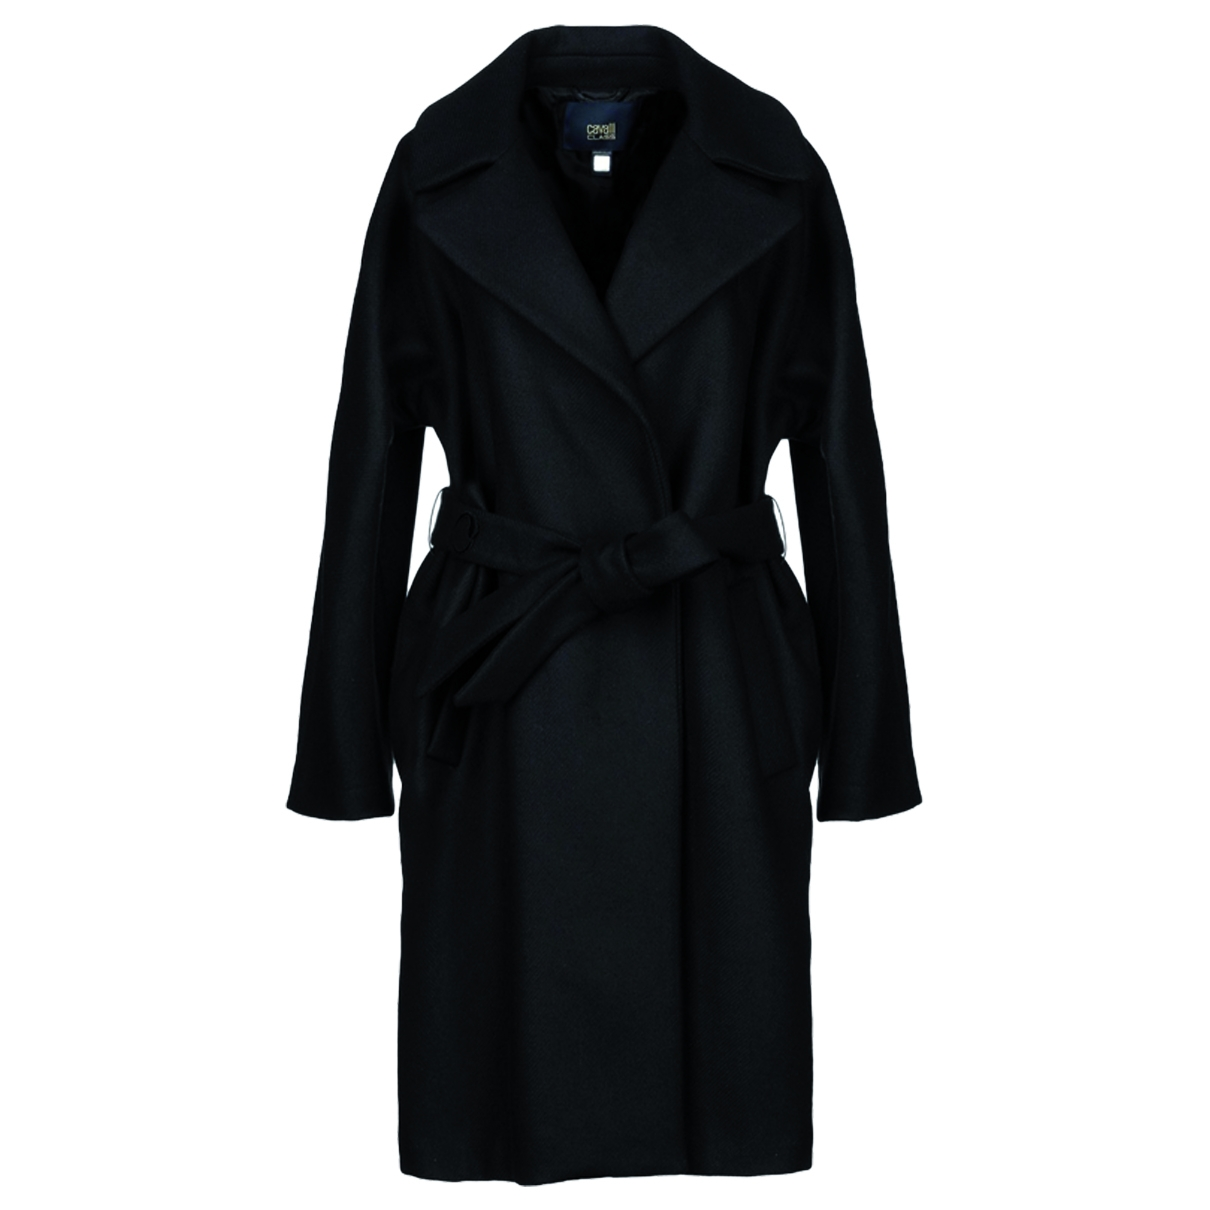 Class Cavalli \N Black Wool coat for Women 44 IT